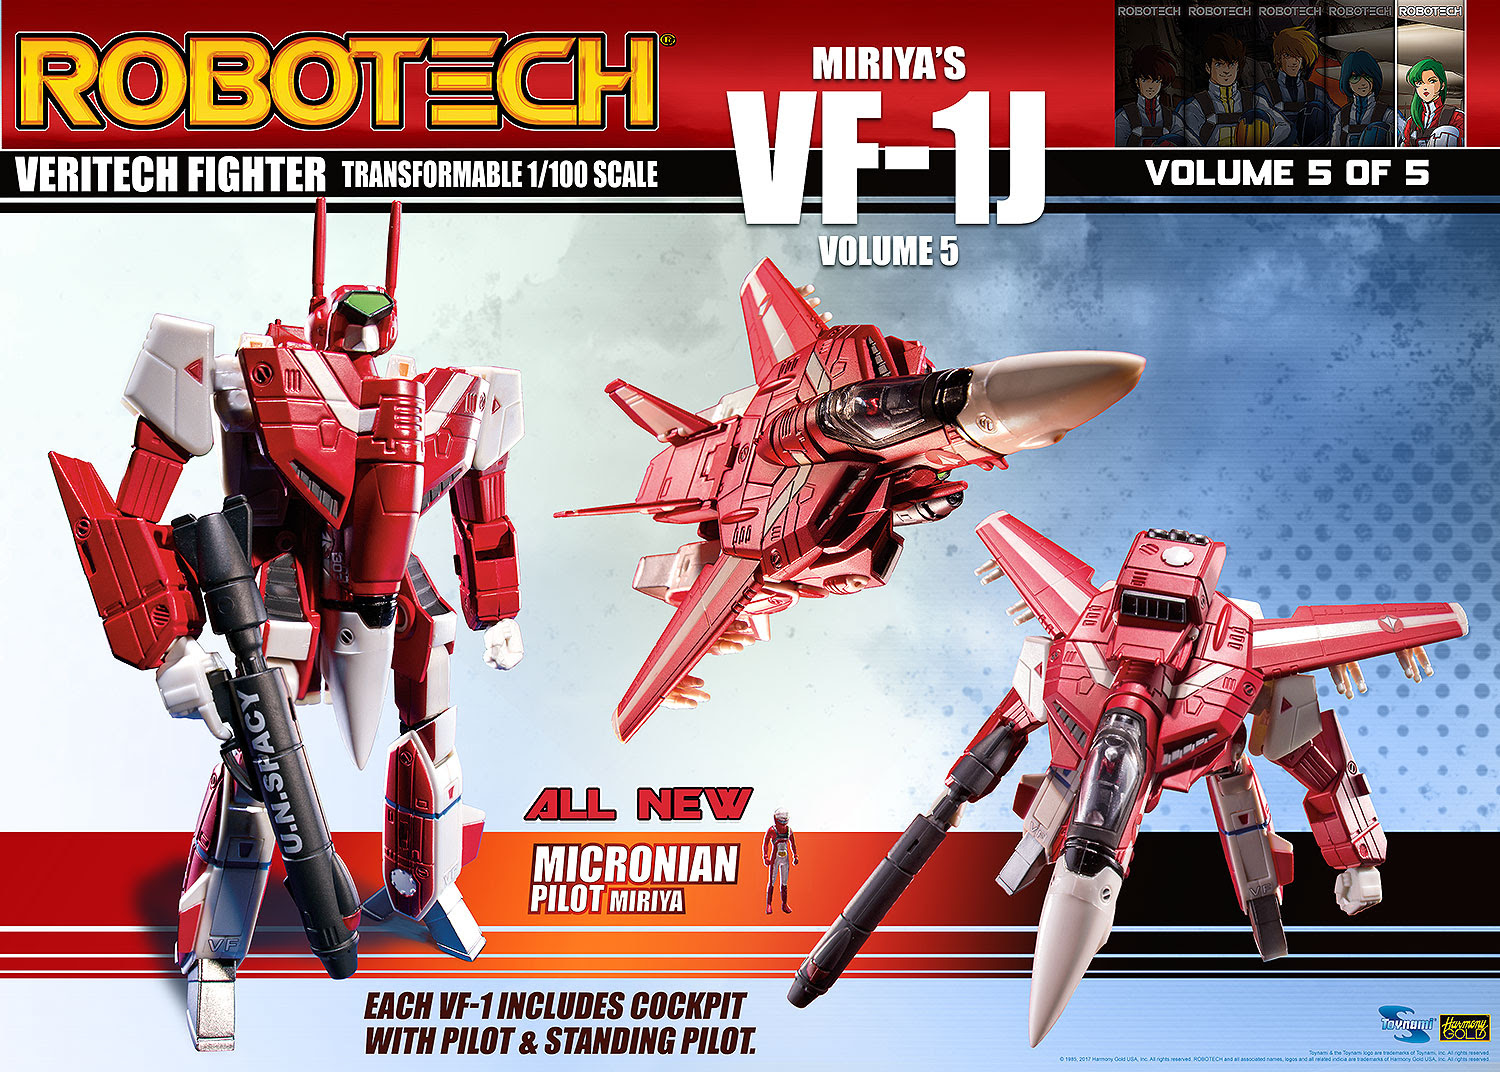 2b4a0e48b70e Robotech VF-1 Transformable Veritech Fighter Collection - MIRIYA STERLING  VOLUME 5 Pre-order